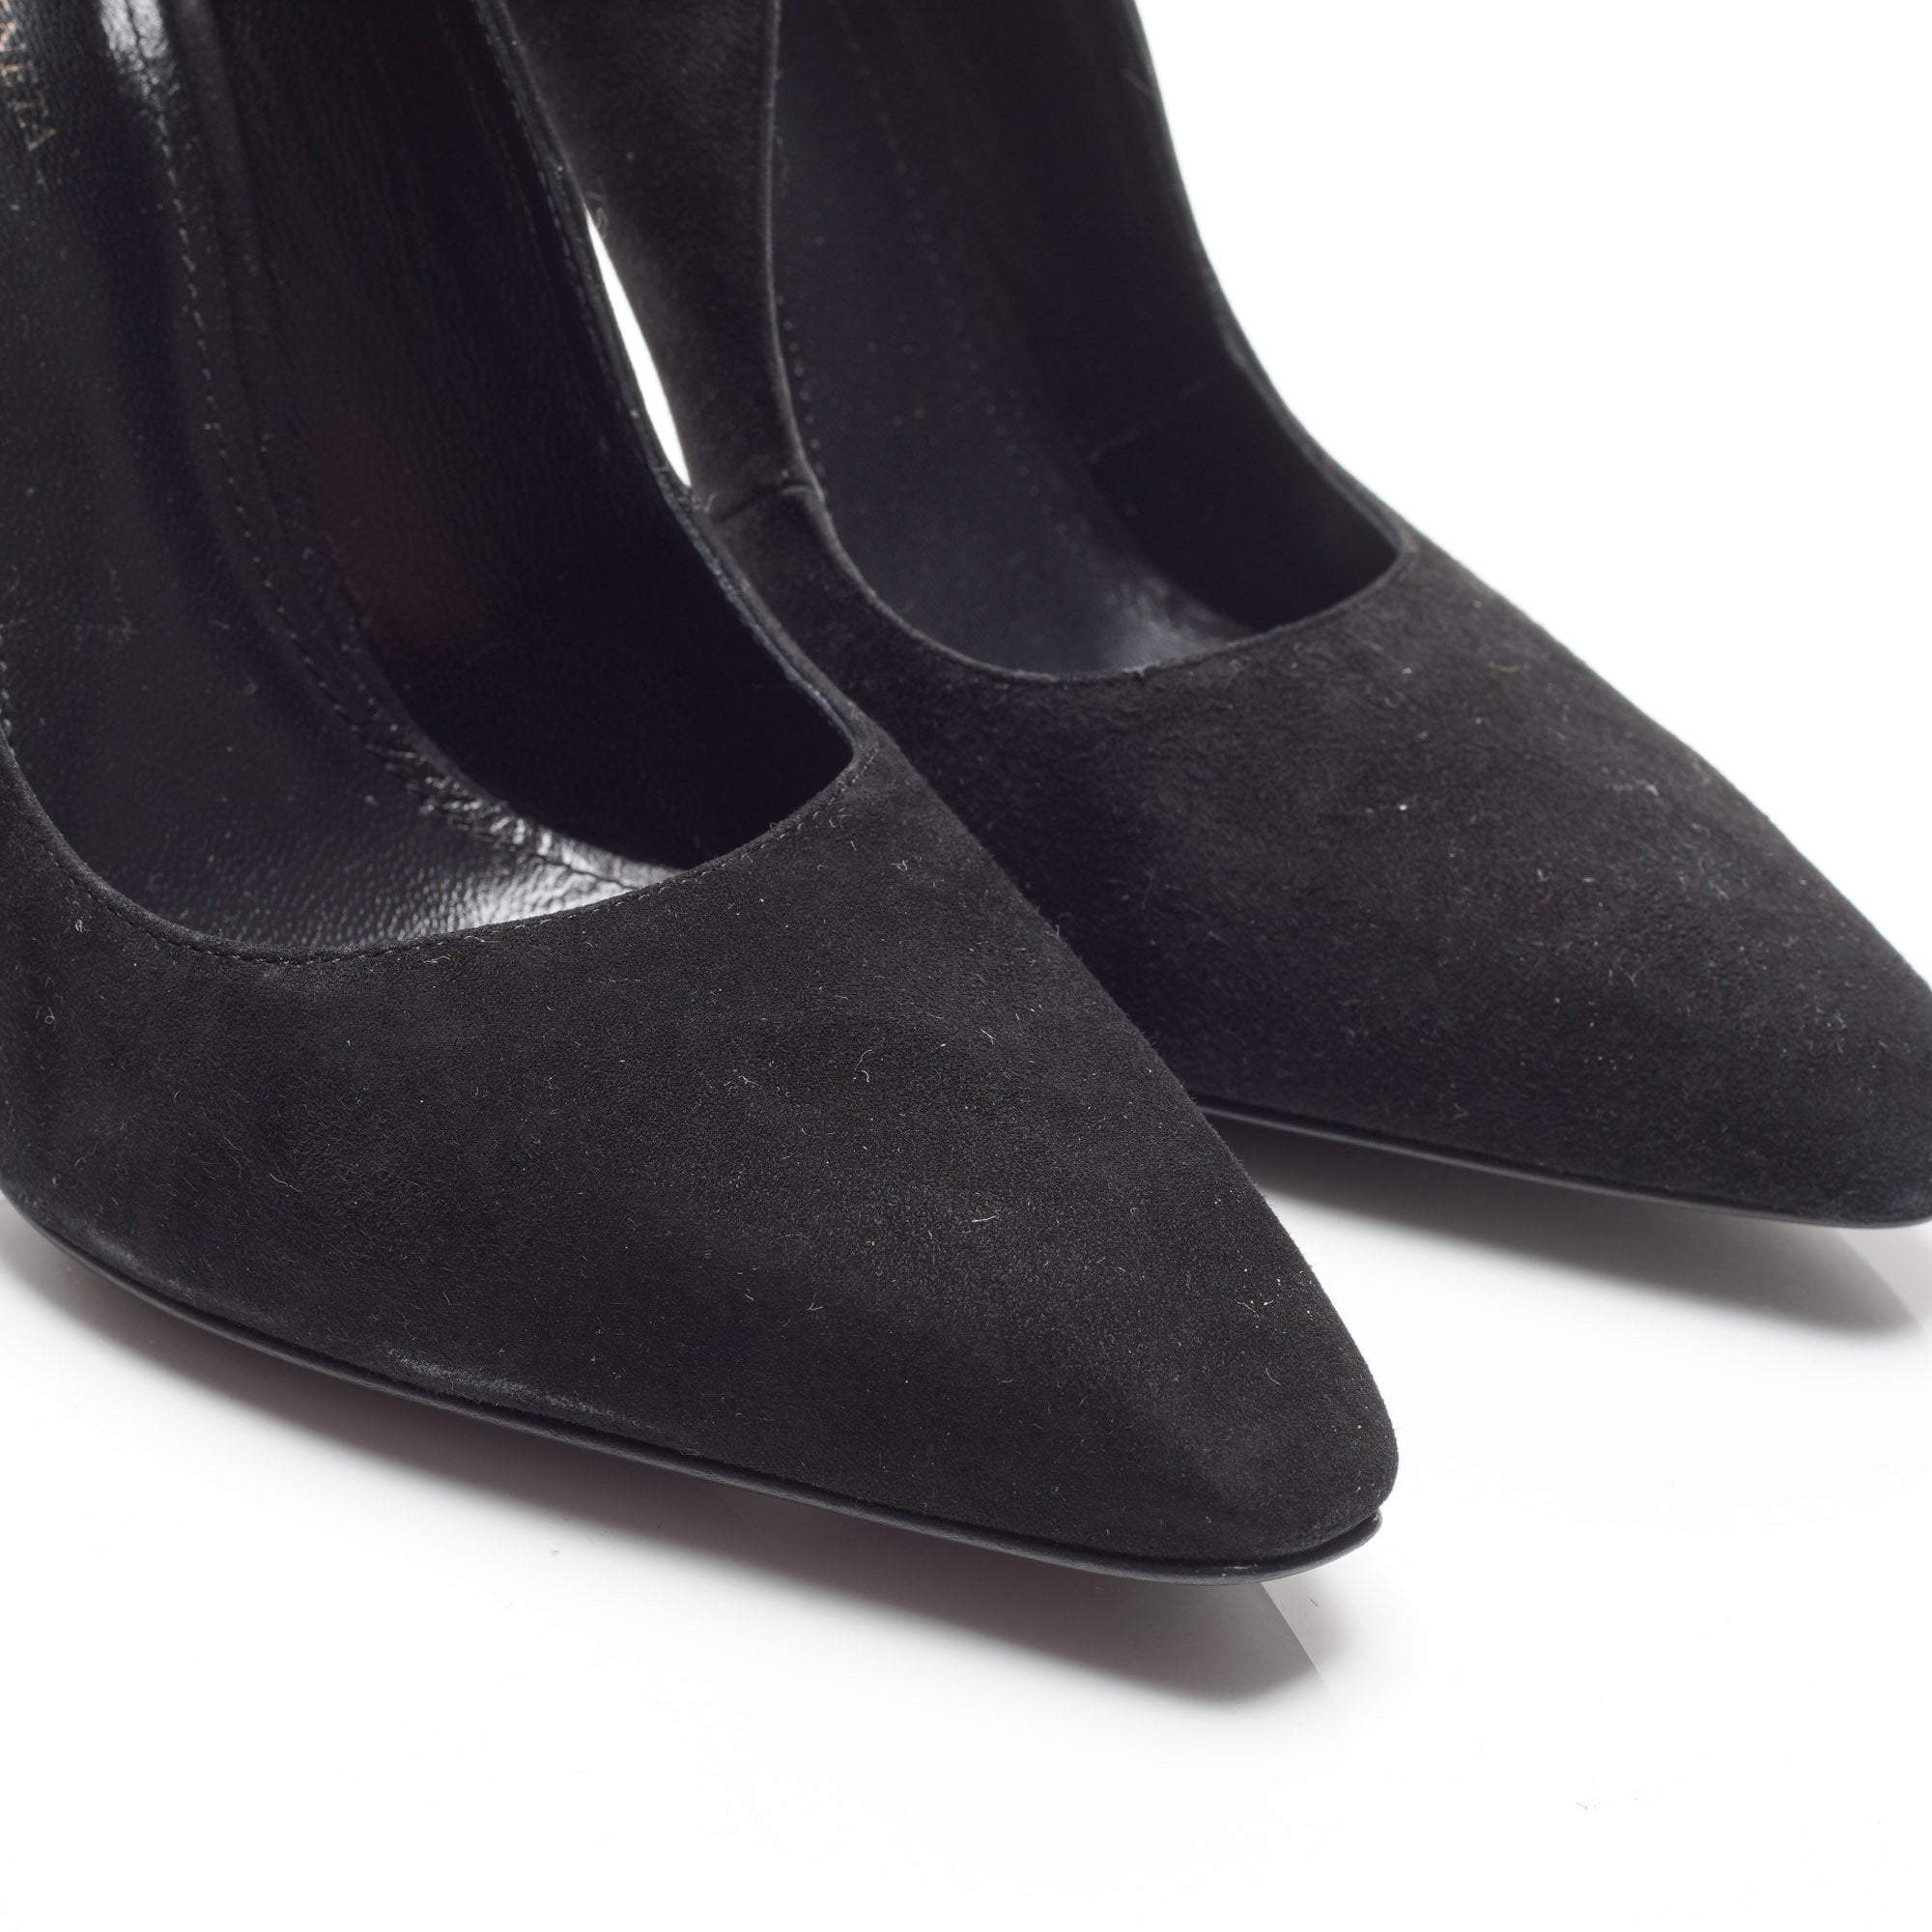 Bottega Veneta Cut Out Suede Pumps